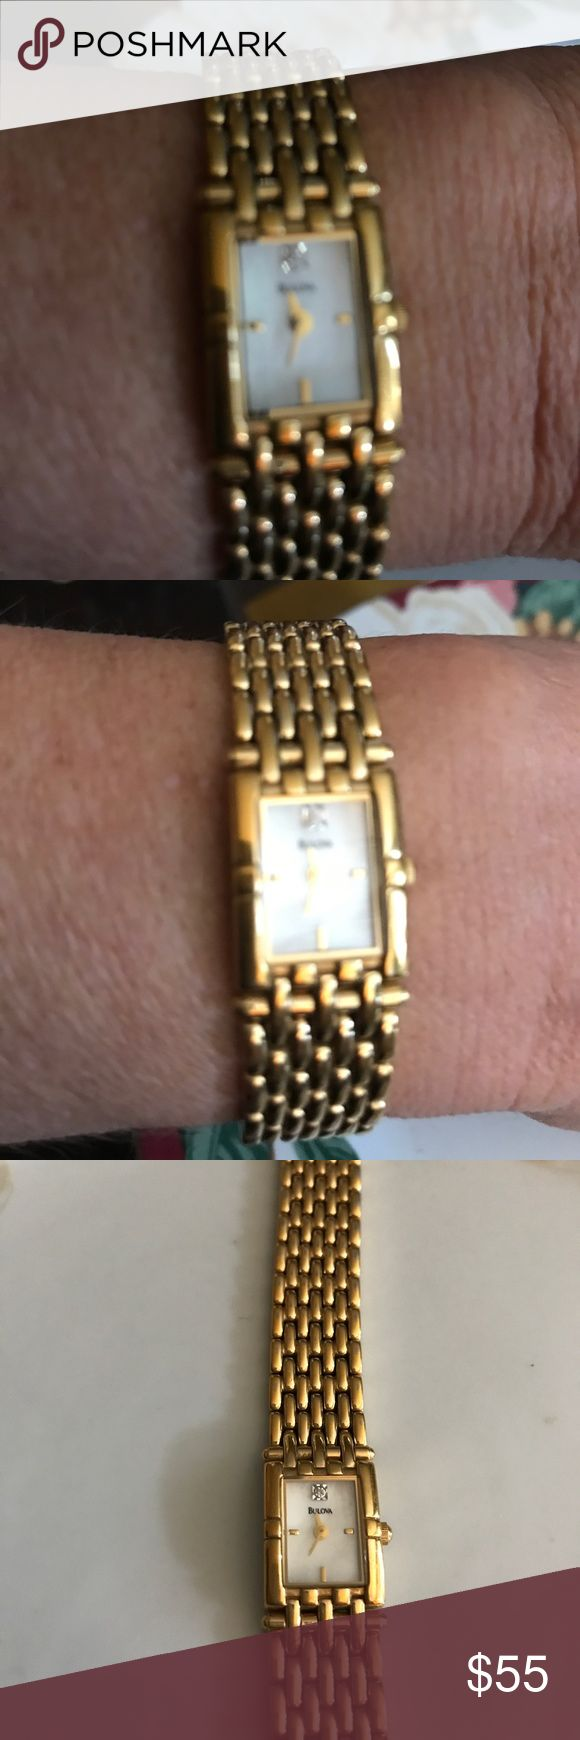 """Vintage Ladies Bulova  Watch gold plate diamond Ladies vintage Bulova watch, gold plated, diamond chip, new battery, jeweler checked. Works perfectly. Price firm unless bundled. 7 1/4"""" in length, non adjustable and 1/2"""" in width. Bulova Accessories Watches"""